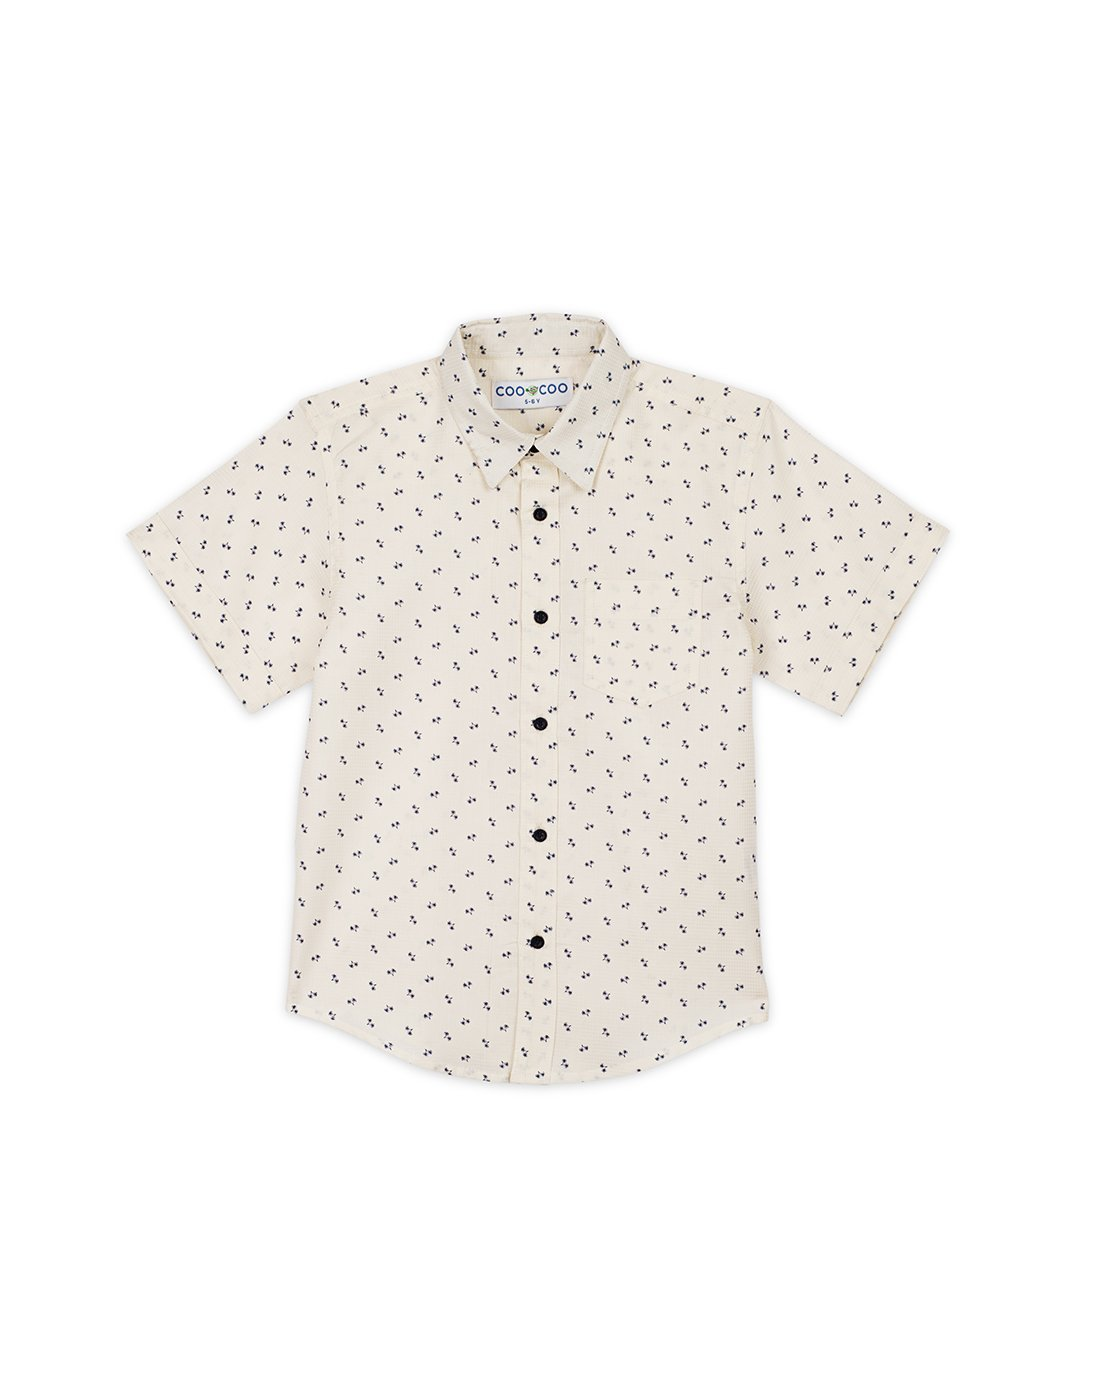 Cocunut Tree Printed Shirt